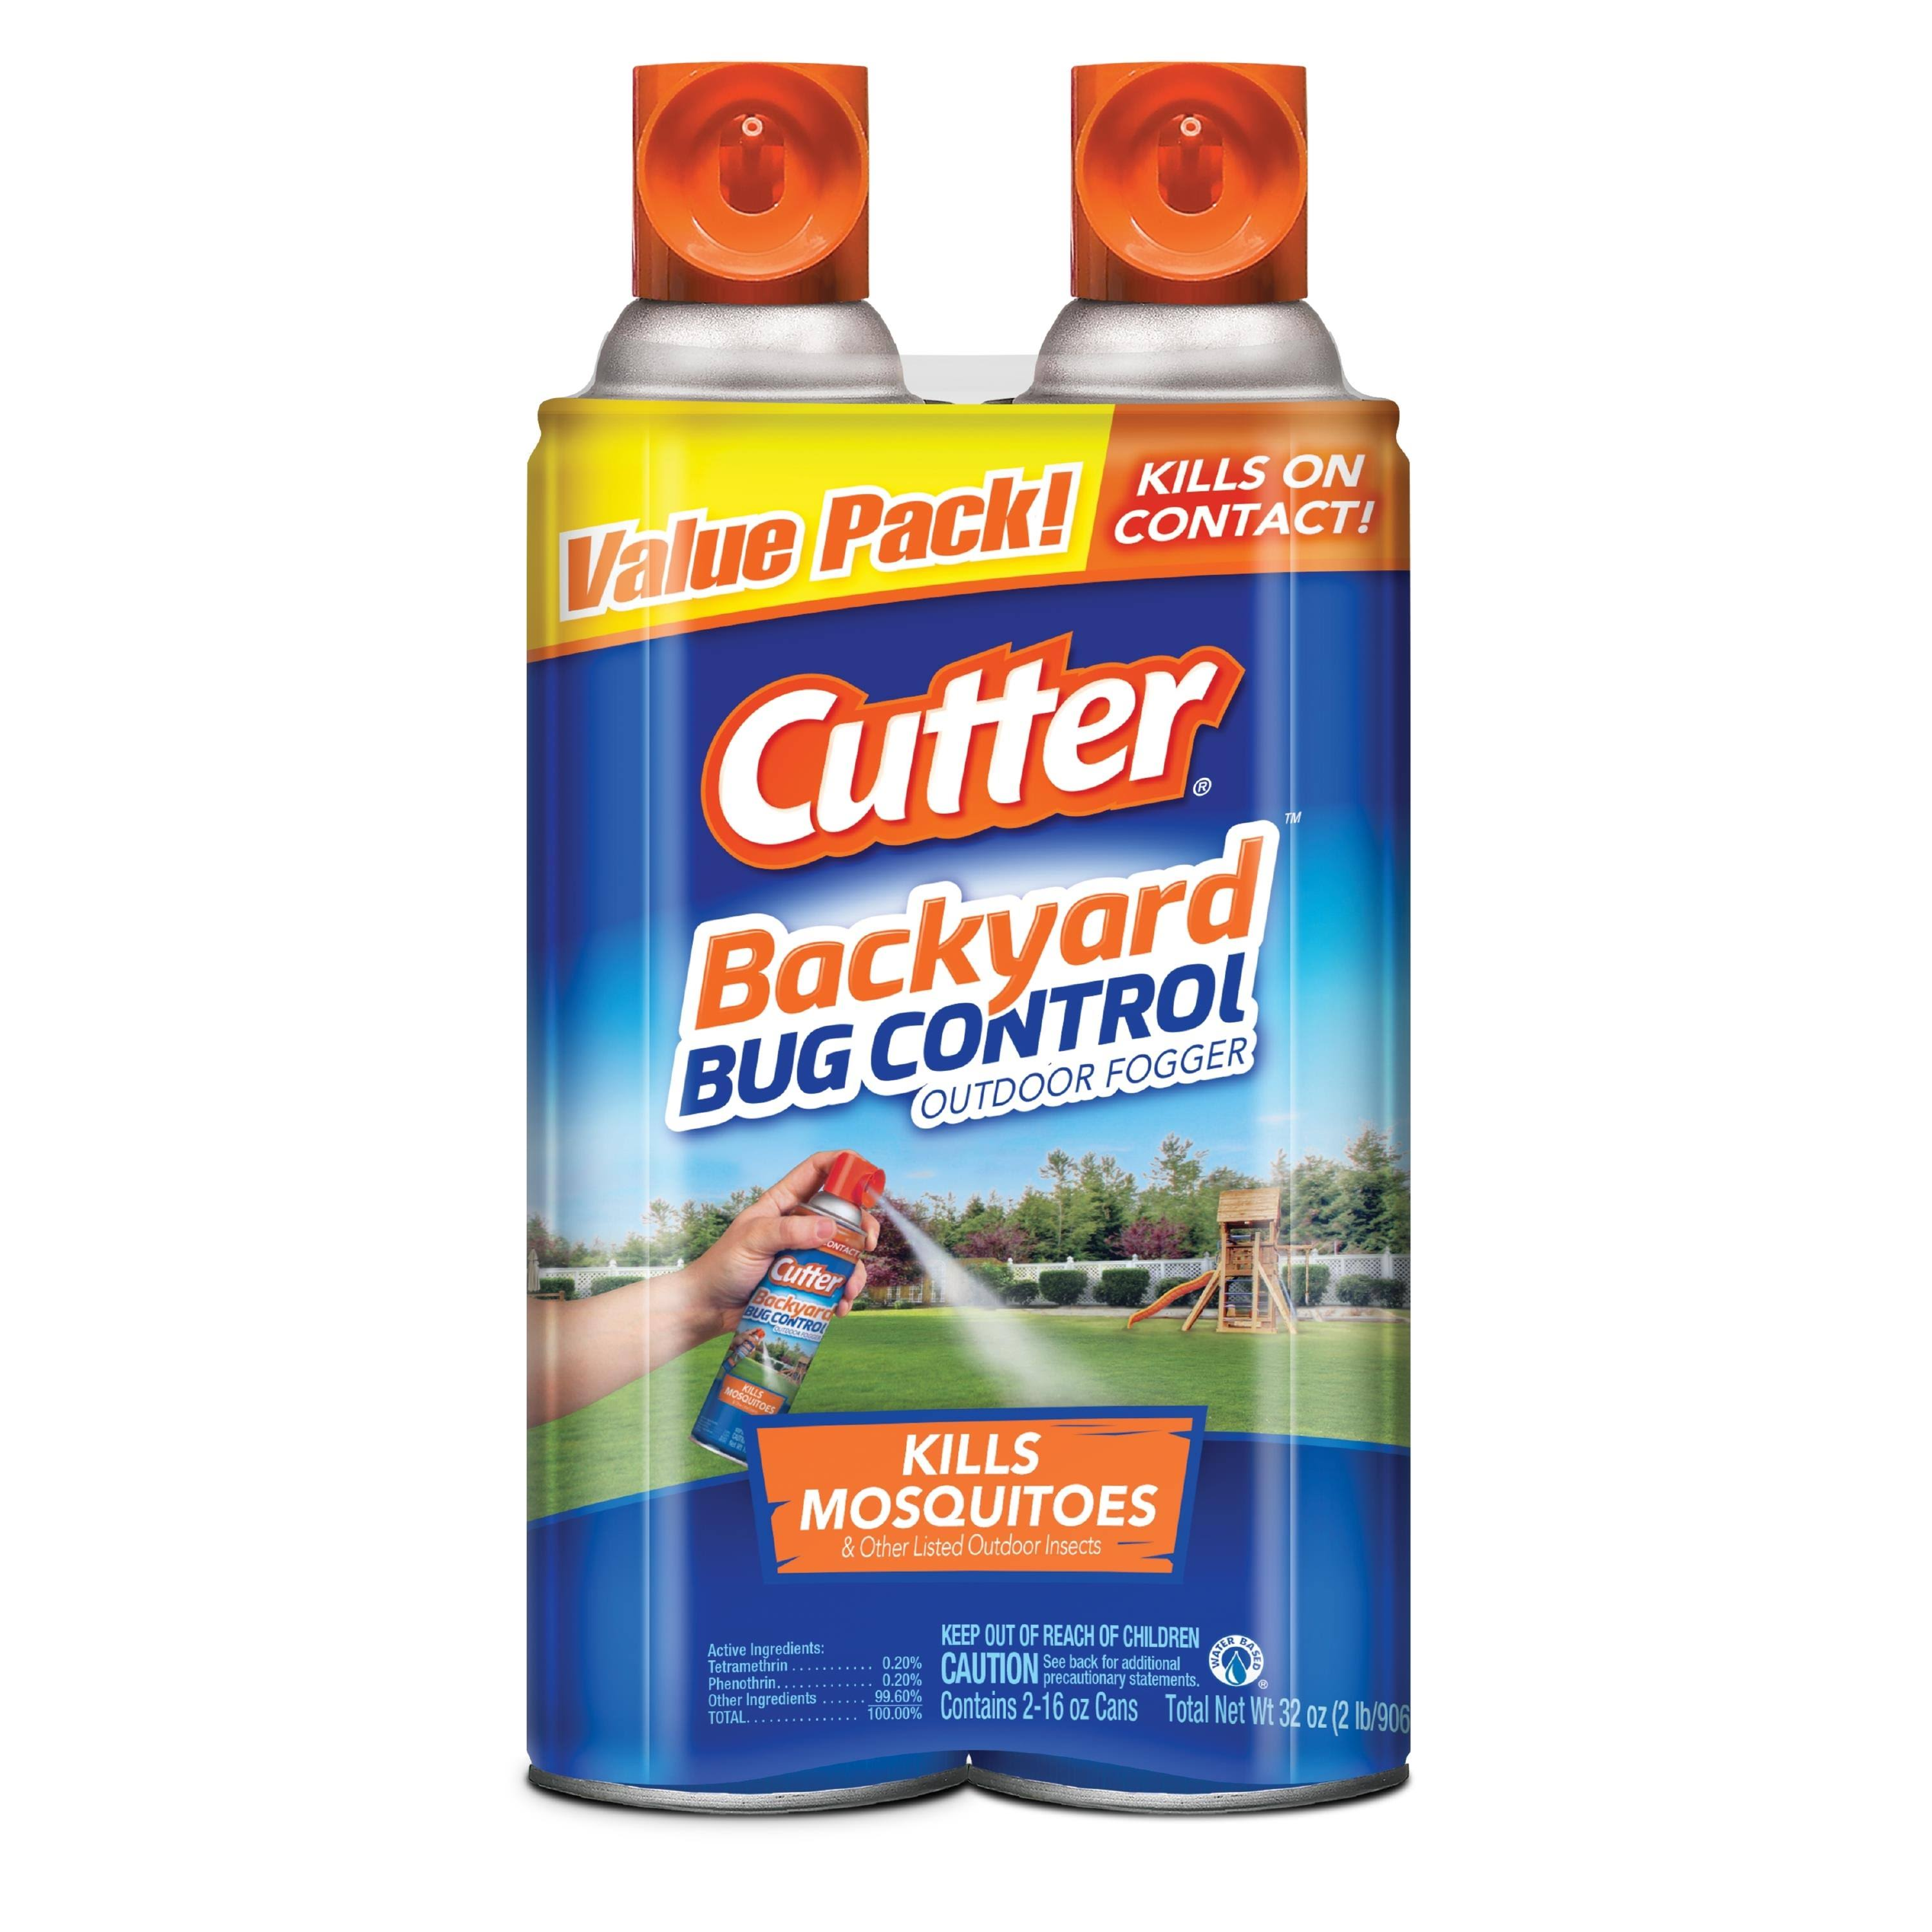 Cutter Backyard Bug Control Outdoor Fogger - 16oz, 2pk